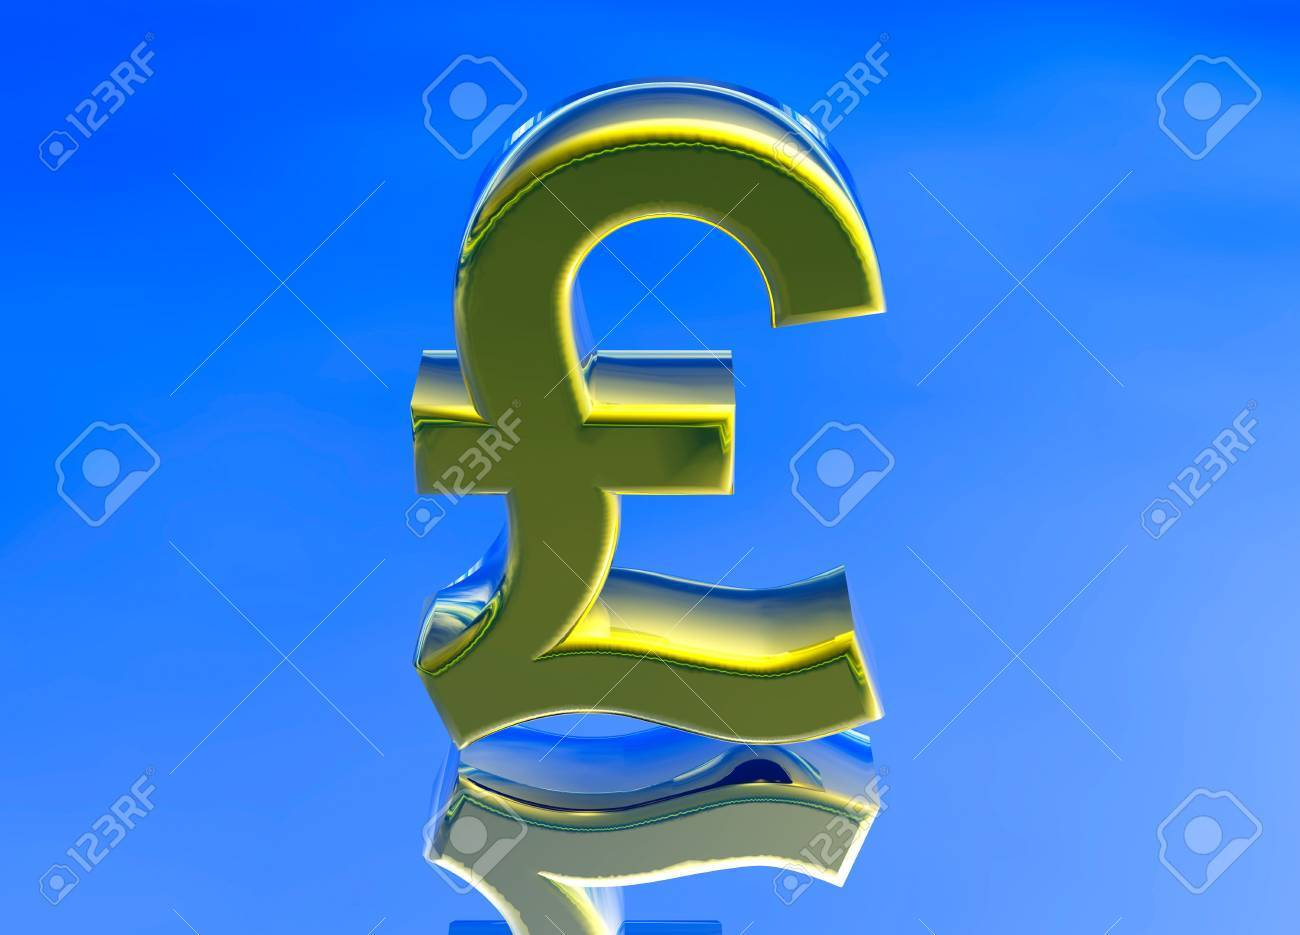 Gold uk gbp pound sterling currency symbol on blue background gold uk gbp pound sterling currency symbol on blue background stock photo 3799717 buycottarizona